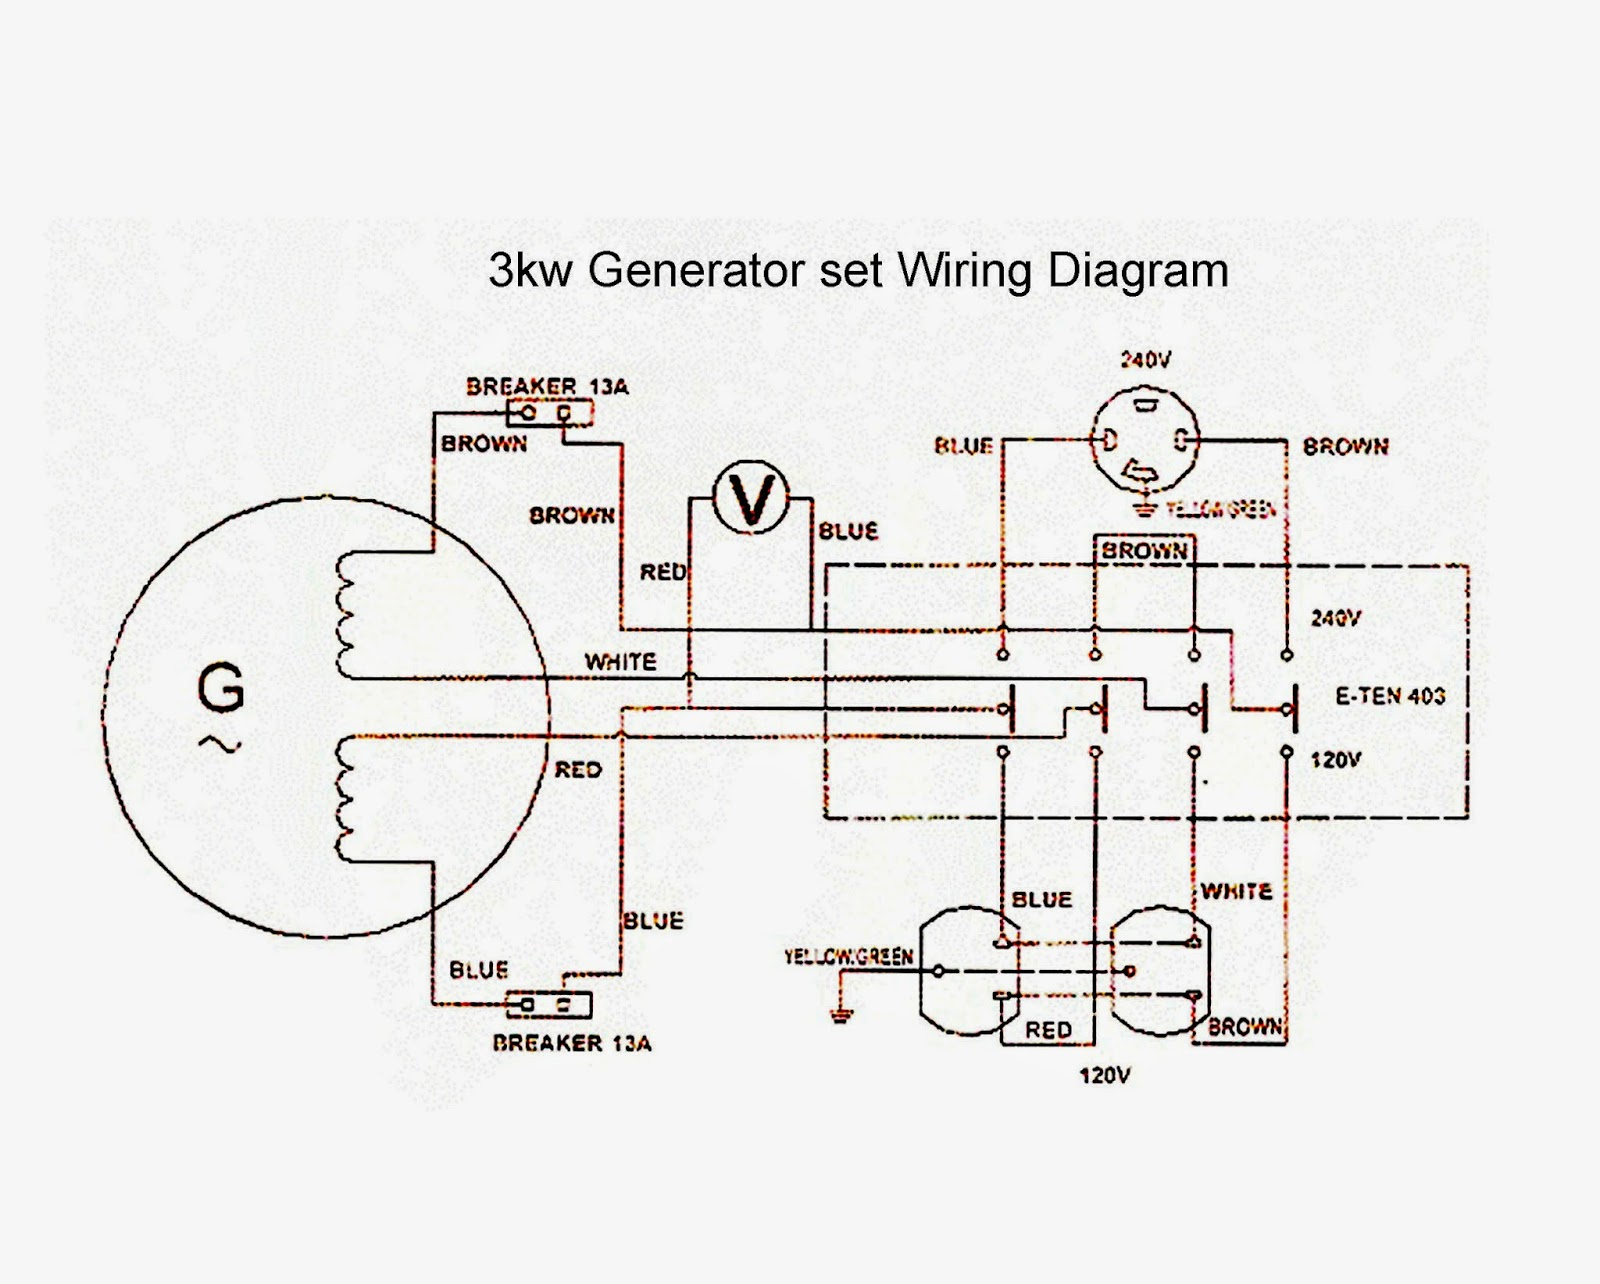 Wire Diagram Creator Just Another Wiring Blog Draw Circuit Diagrams July 2014 Electrical Winding Tite Brake Controller